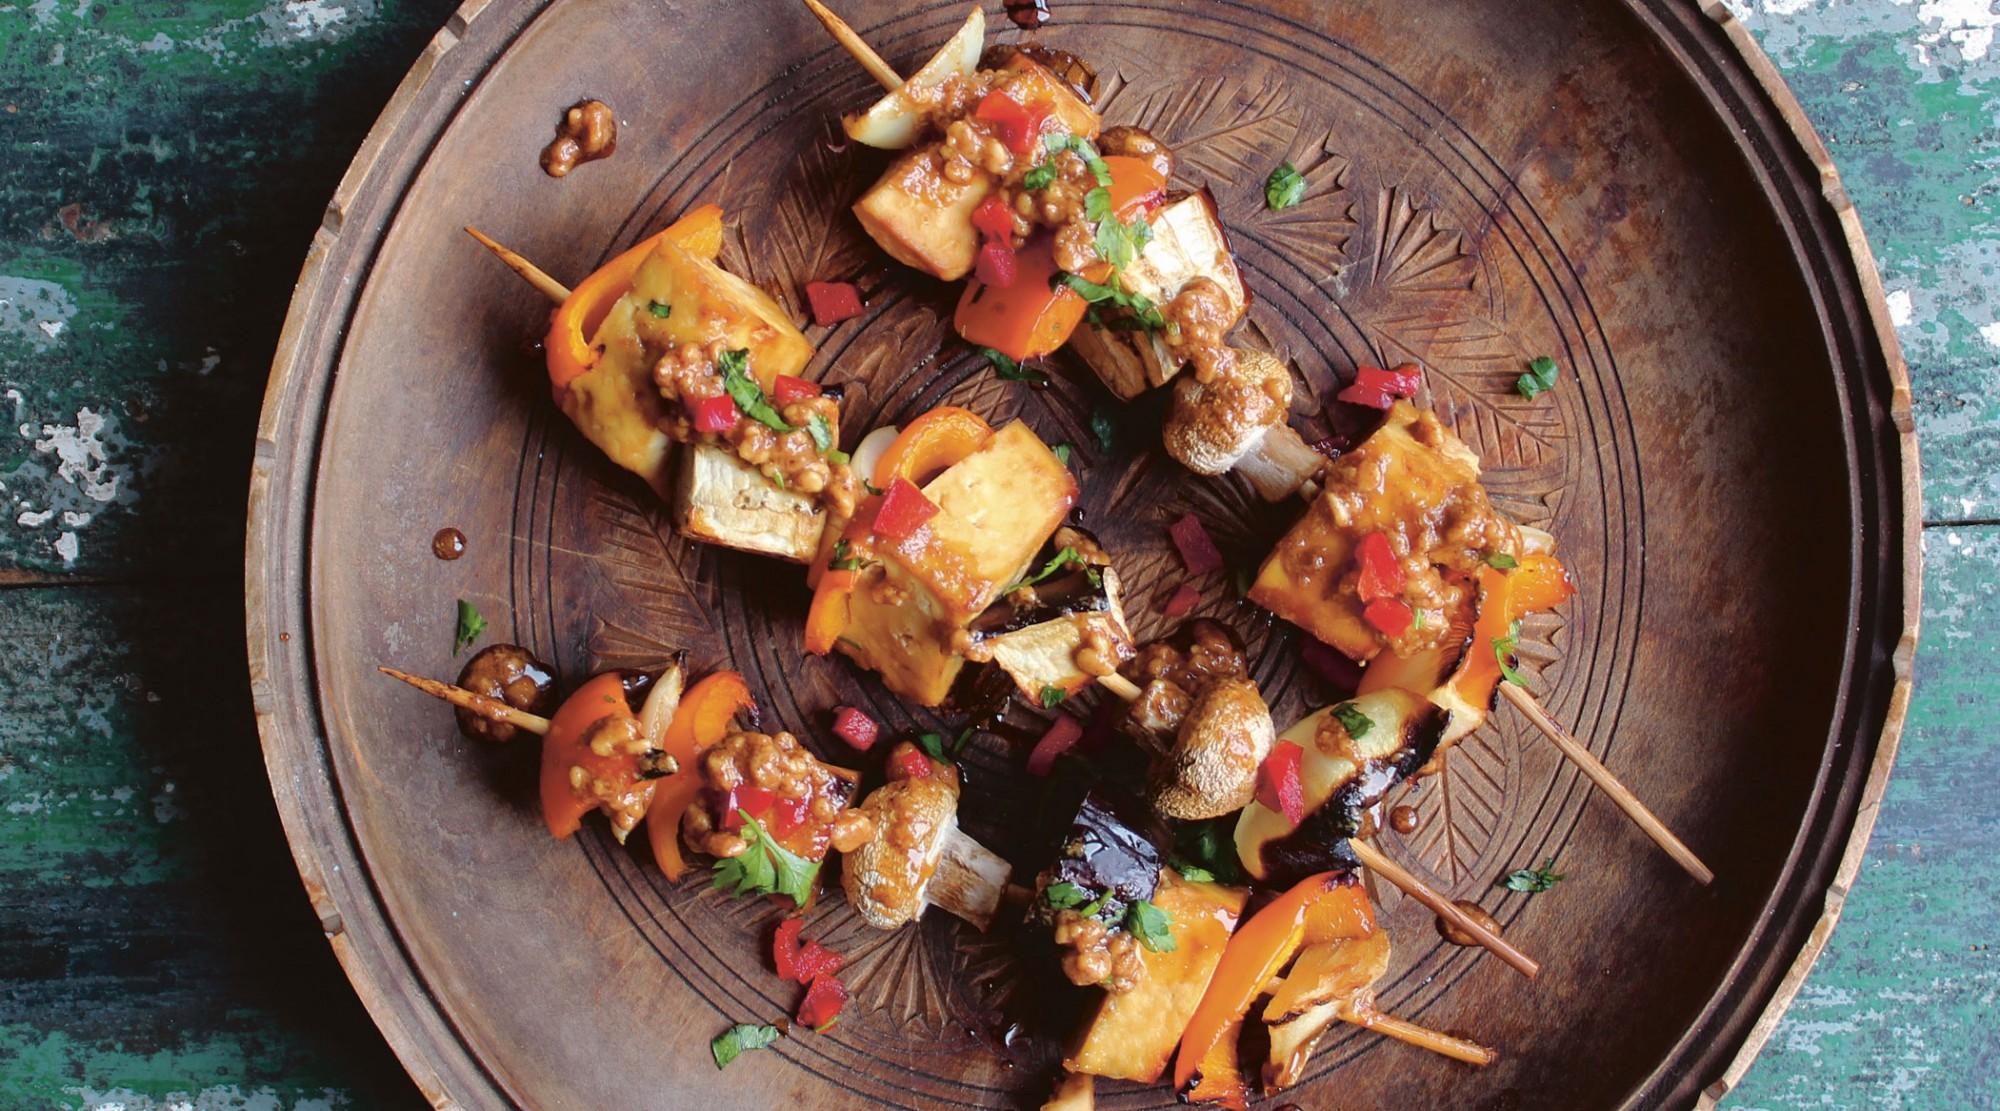 Tofu Skewers with Peanut Sauce